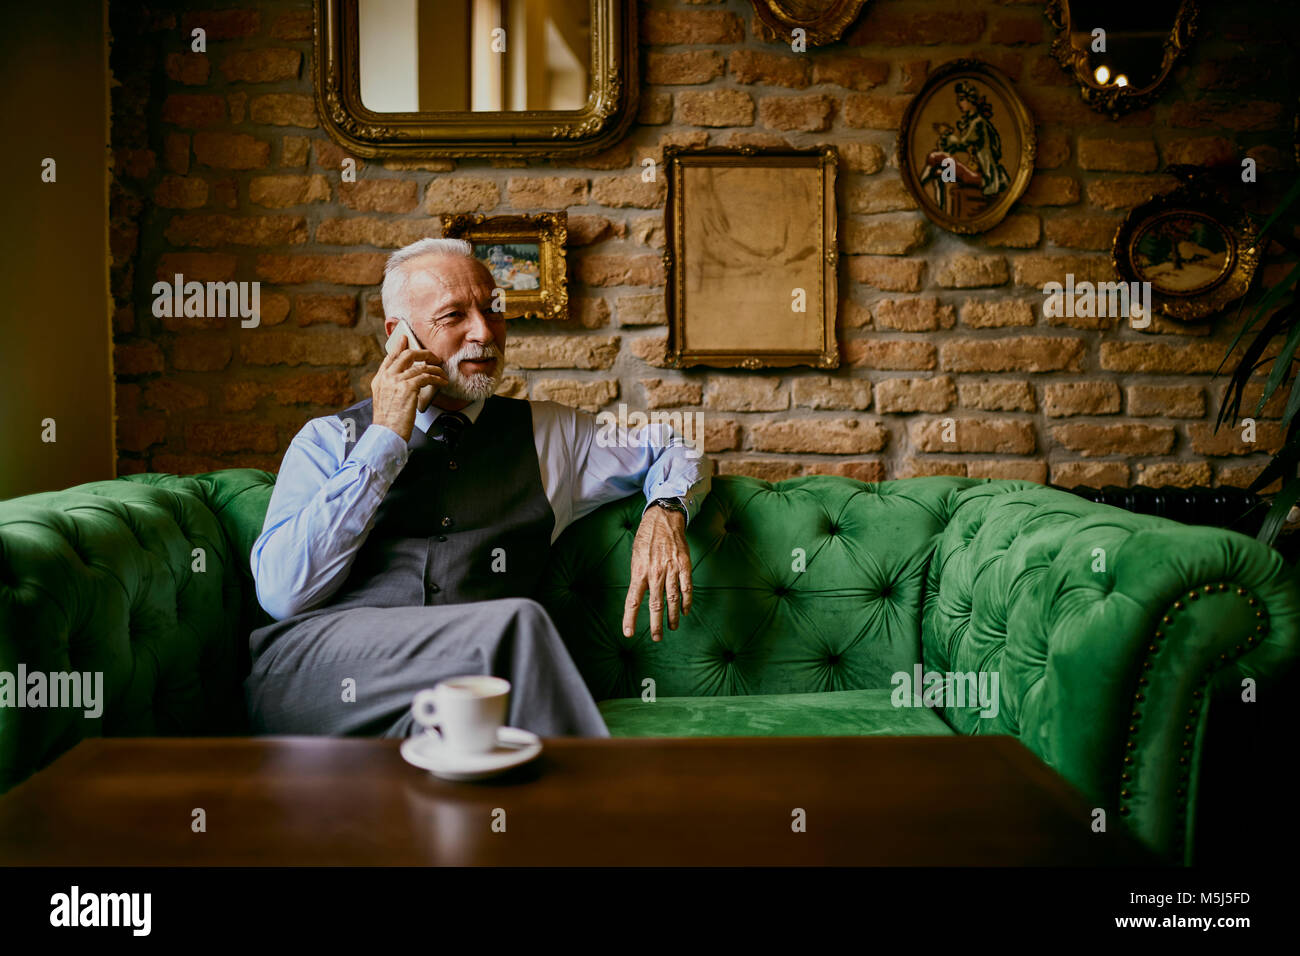 Elegant senior man sitting on couch in a cafe talking on cell phone Stock Photo